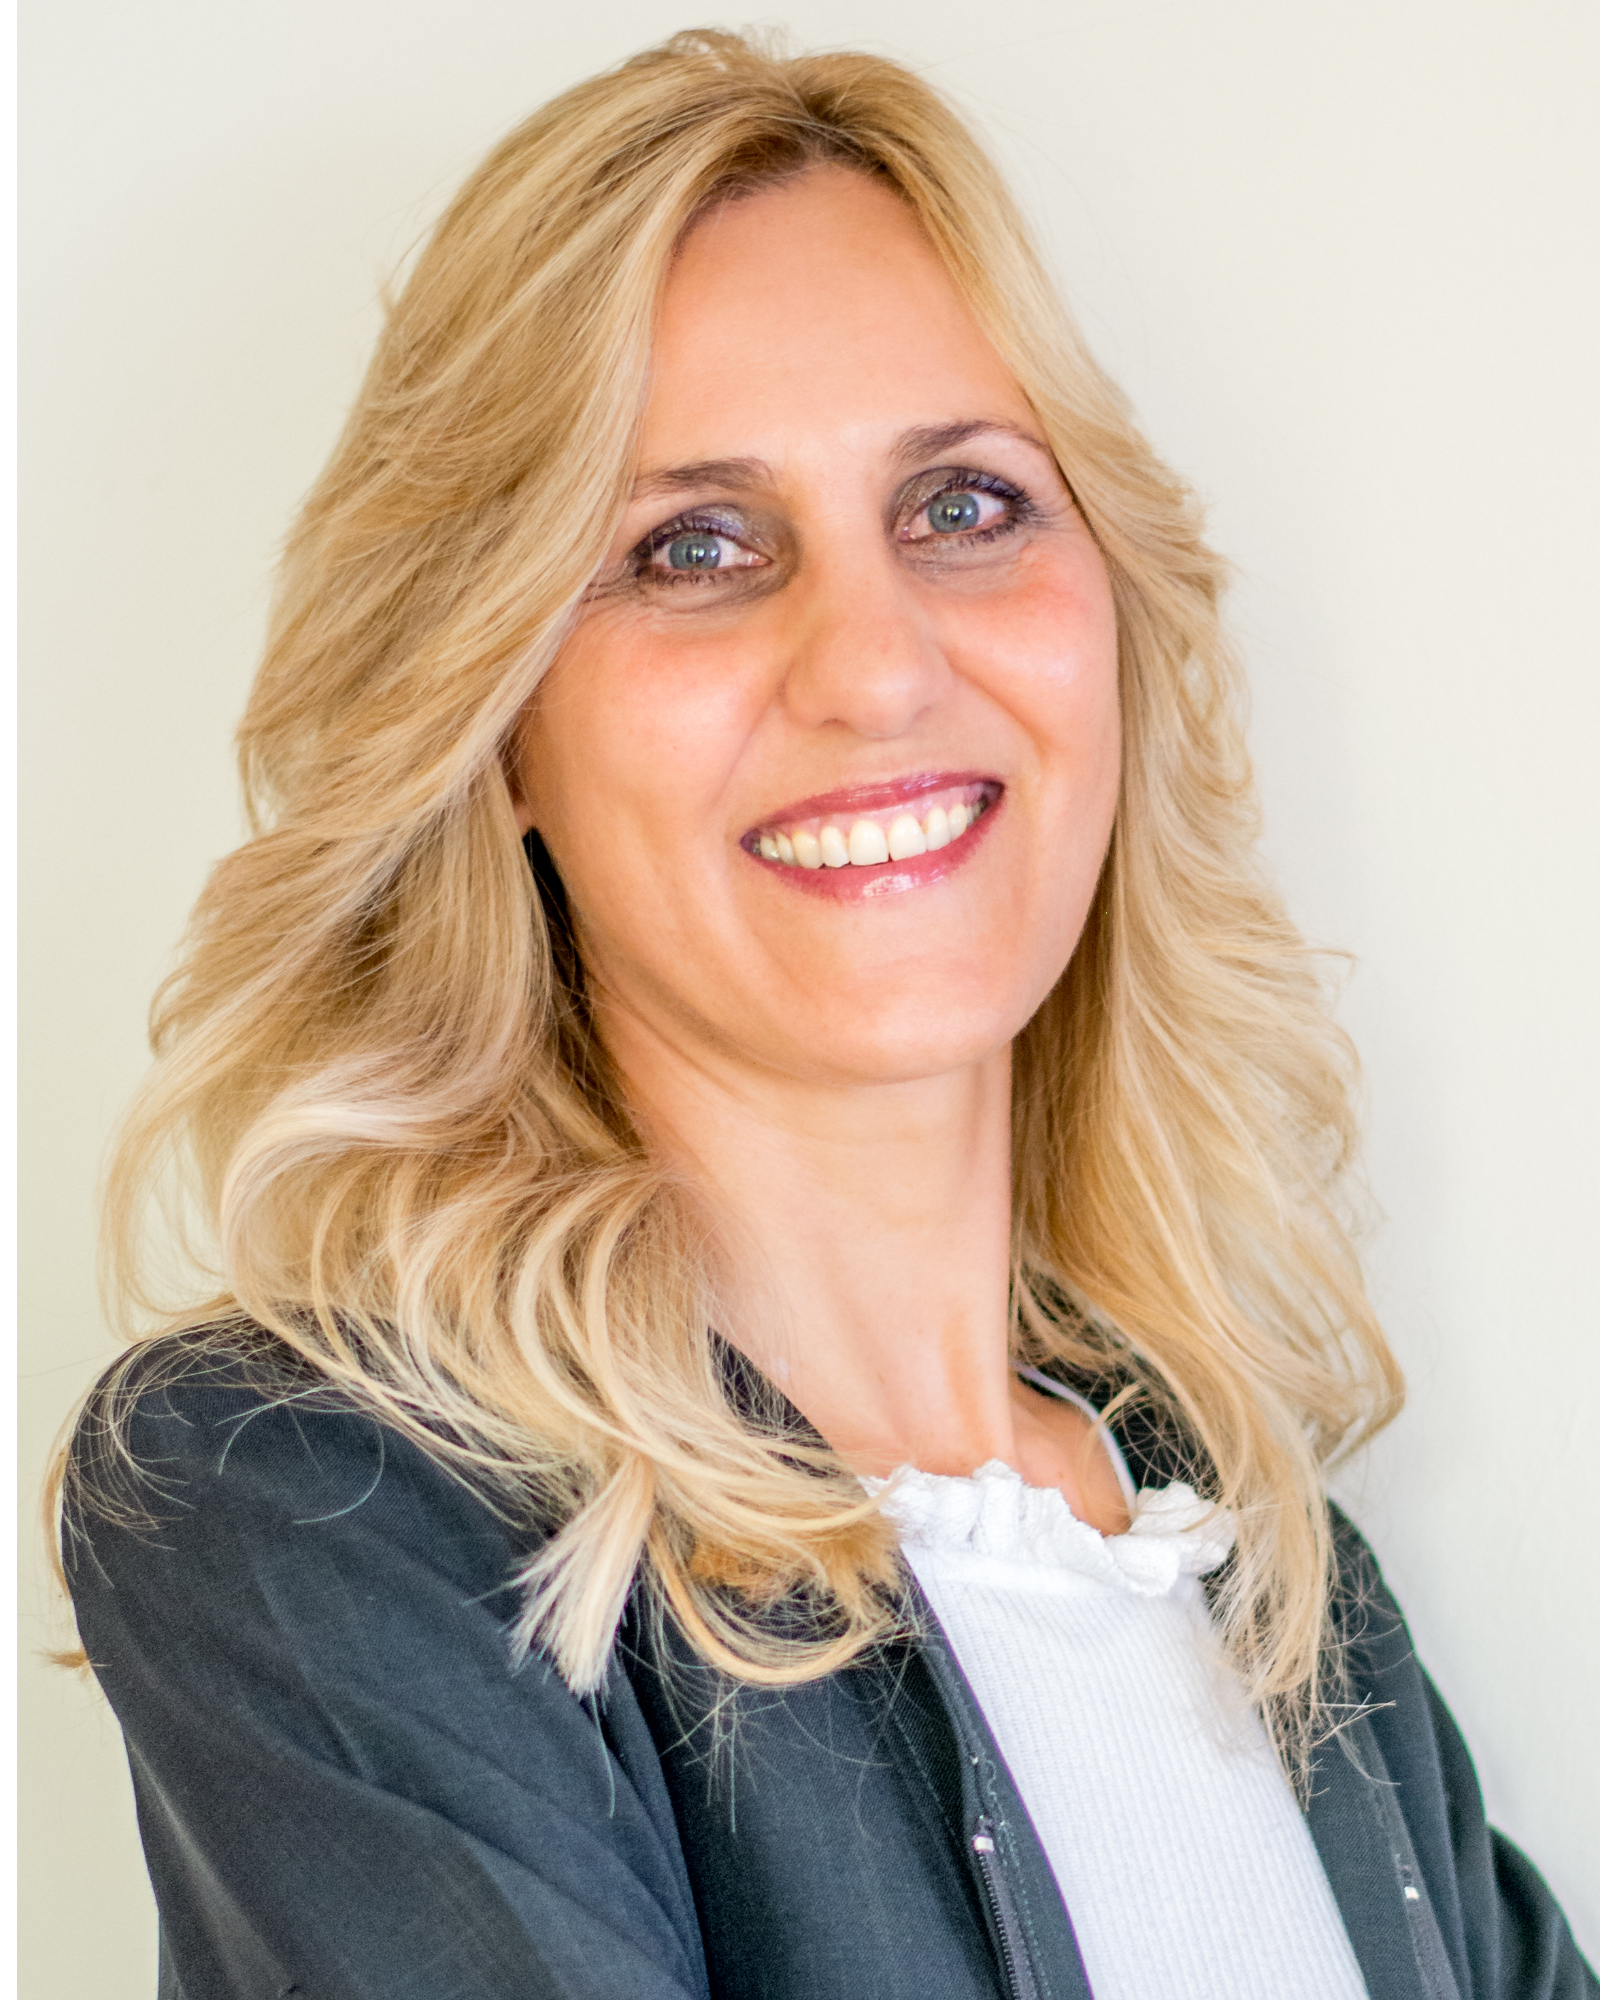 Real Estate Agent - Martinette Grobler